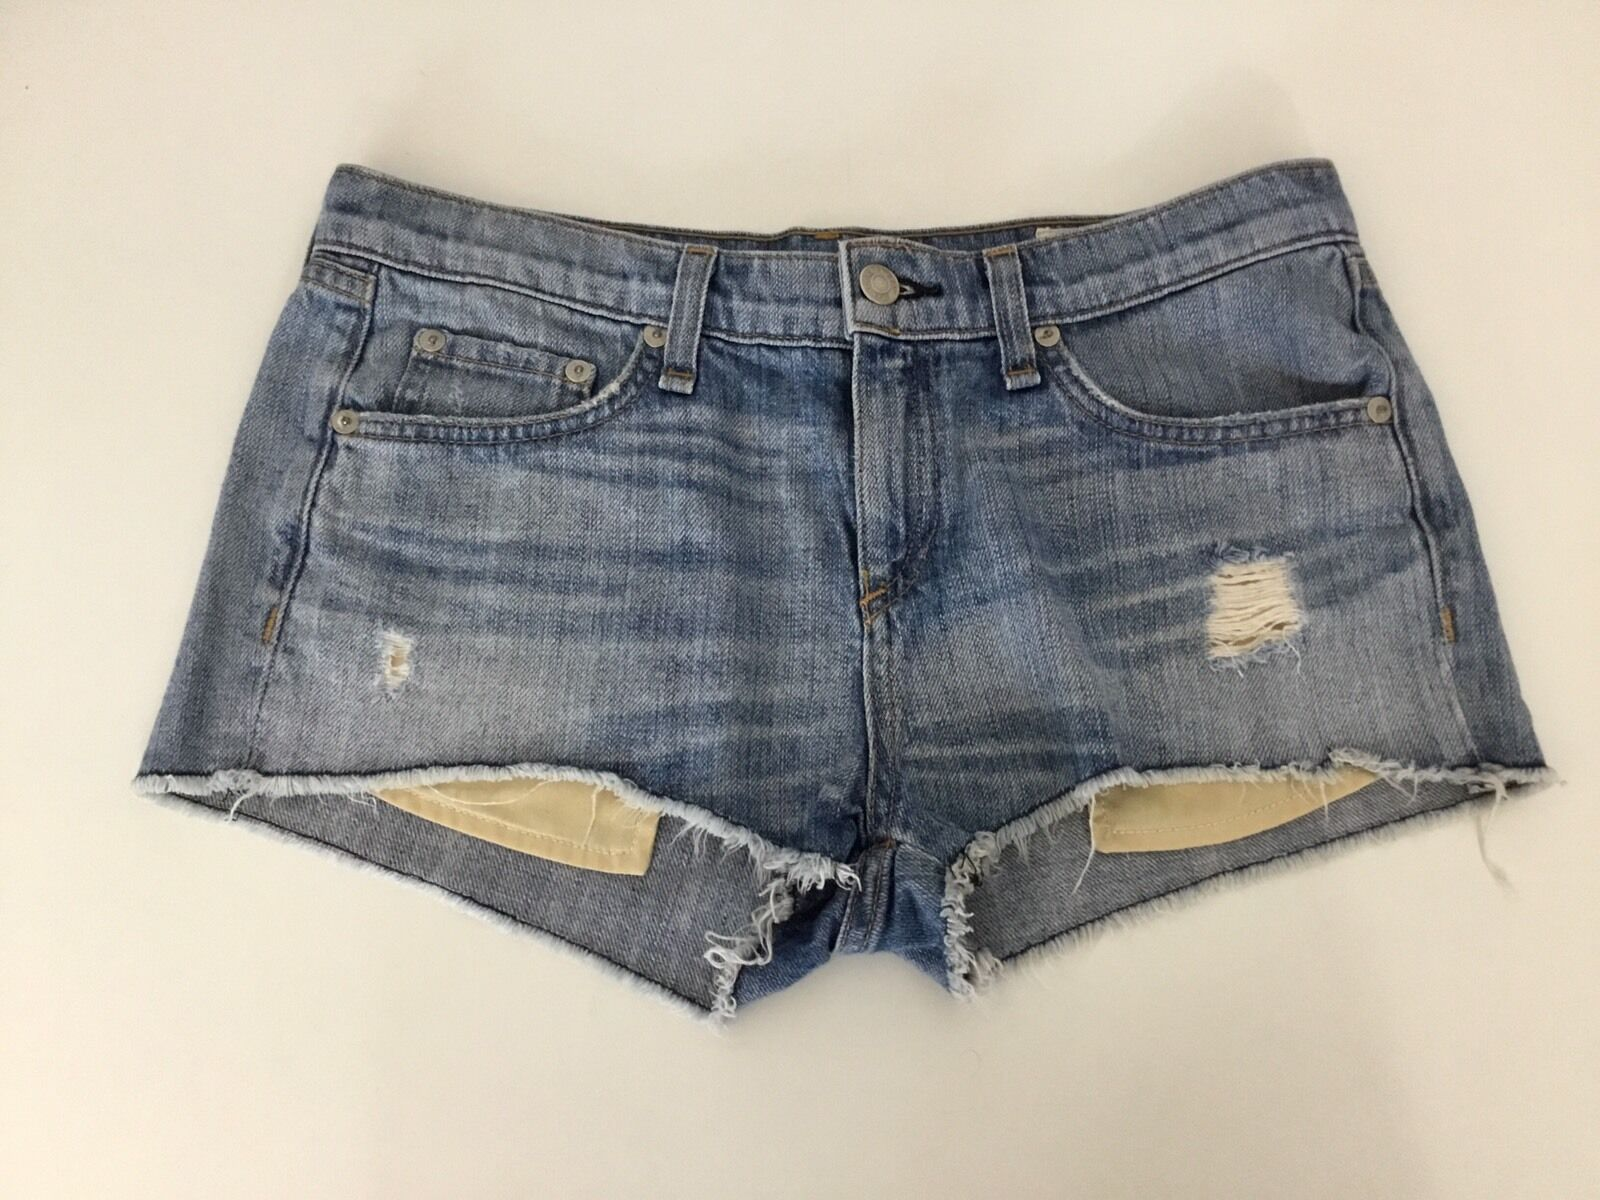 Rag & Bone bluee Denim Shorts Distressed Waist 26  Inches Colour Moss Vgc